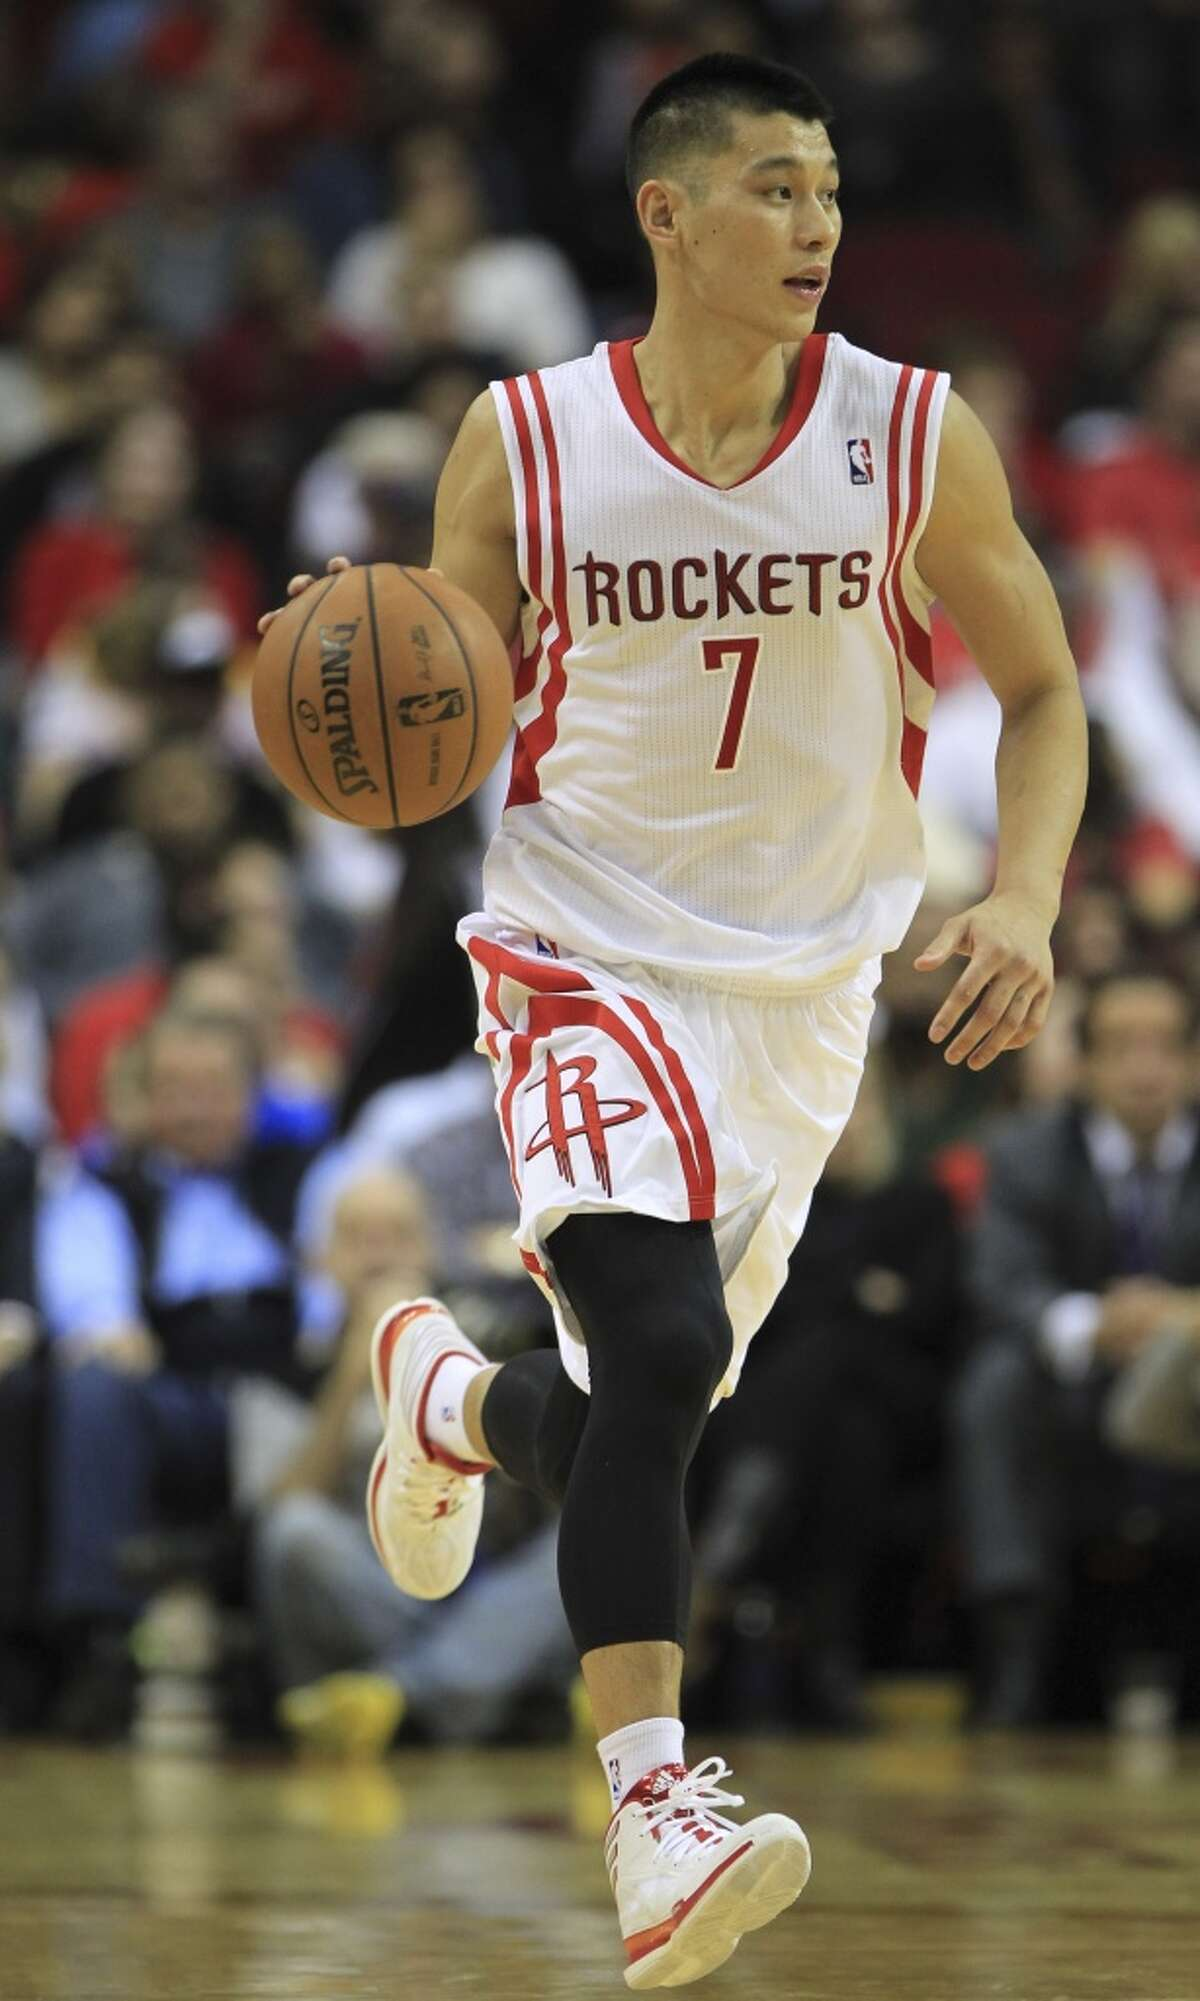 The NBA's first American-born player of Chinese or Taiwanese descent has also played for Golden State, Houston, the Lakers and Charlotte. PHOTOS: Browse through the slideshow for a look back at Jeremy's Lin's career through the years.